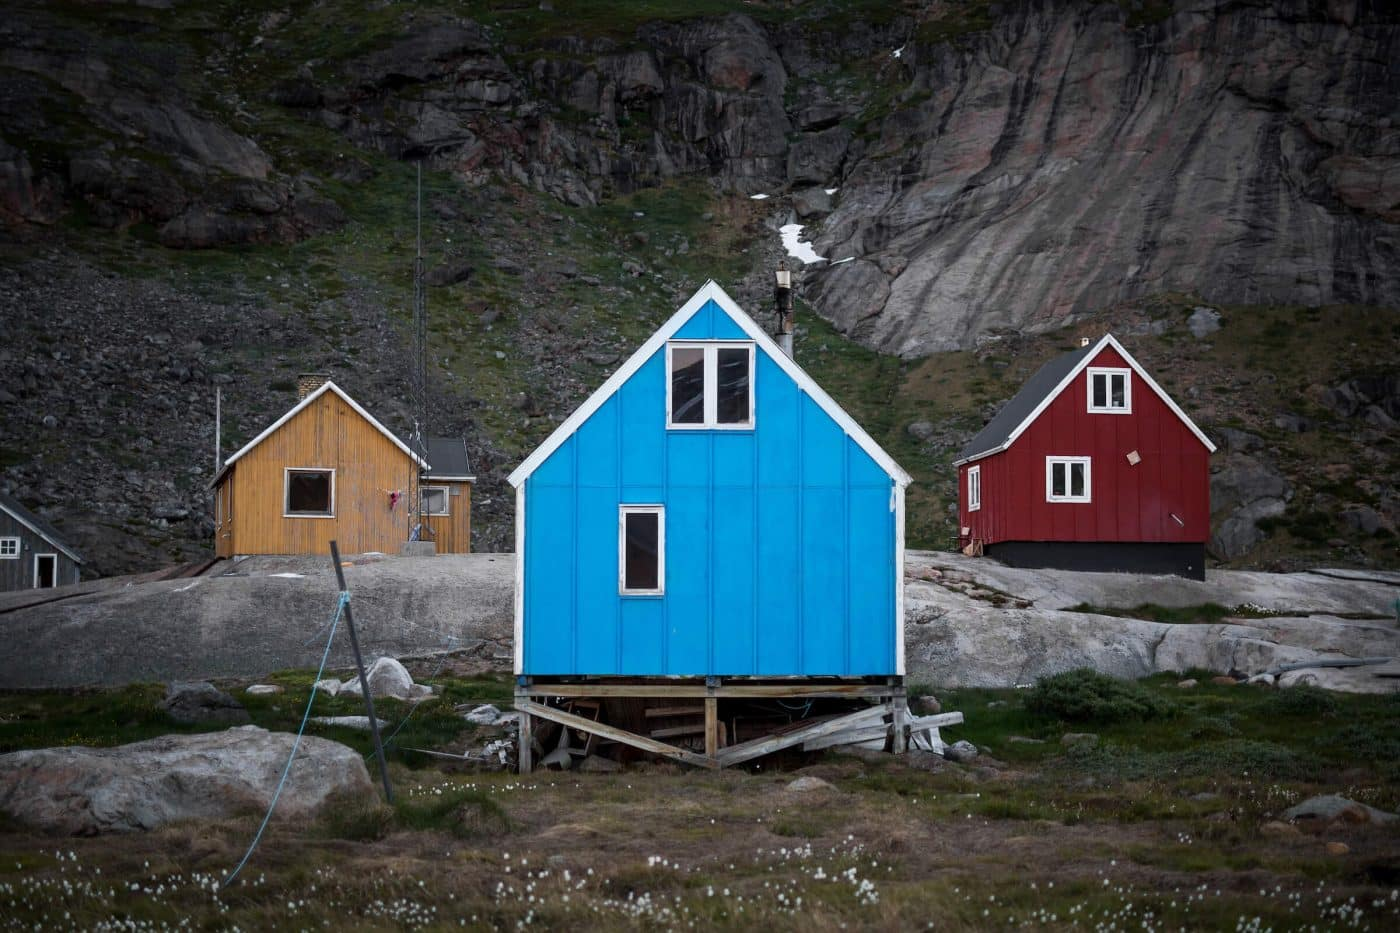 Typical colourful houses in Greenland - these ones in Aappilattoq in South Greenland. Photo by Mads Pihl.